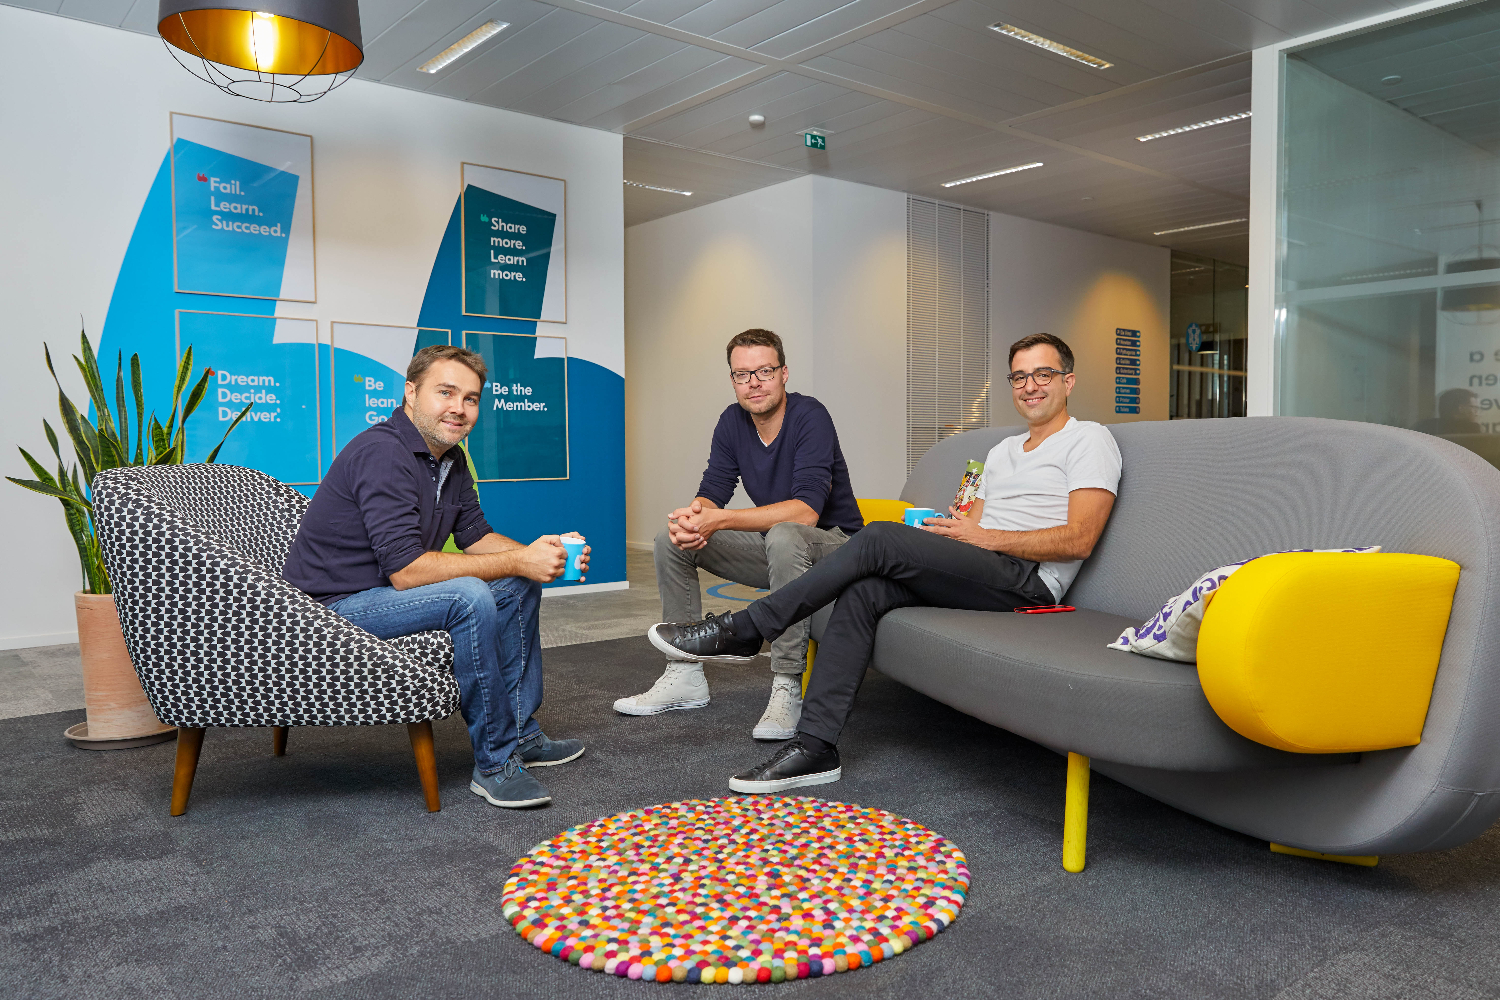 BlaBlaCar offers to all its employees the opportunity to become shareholders